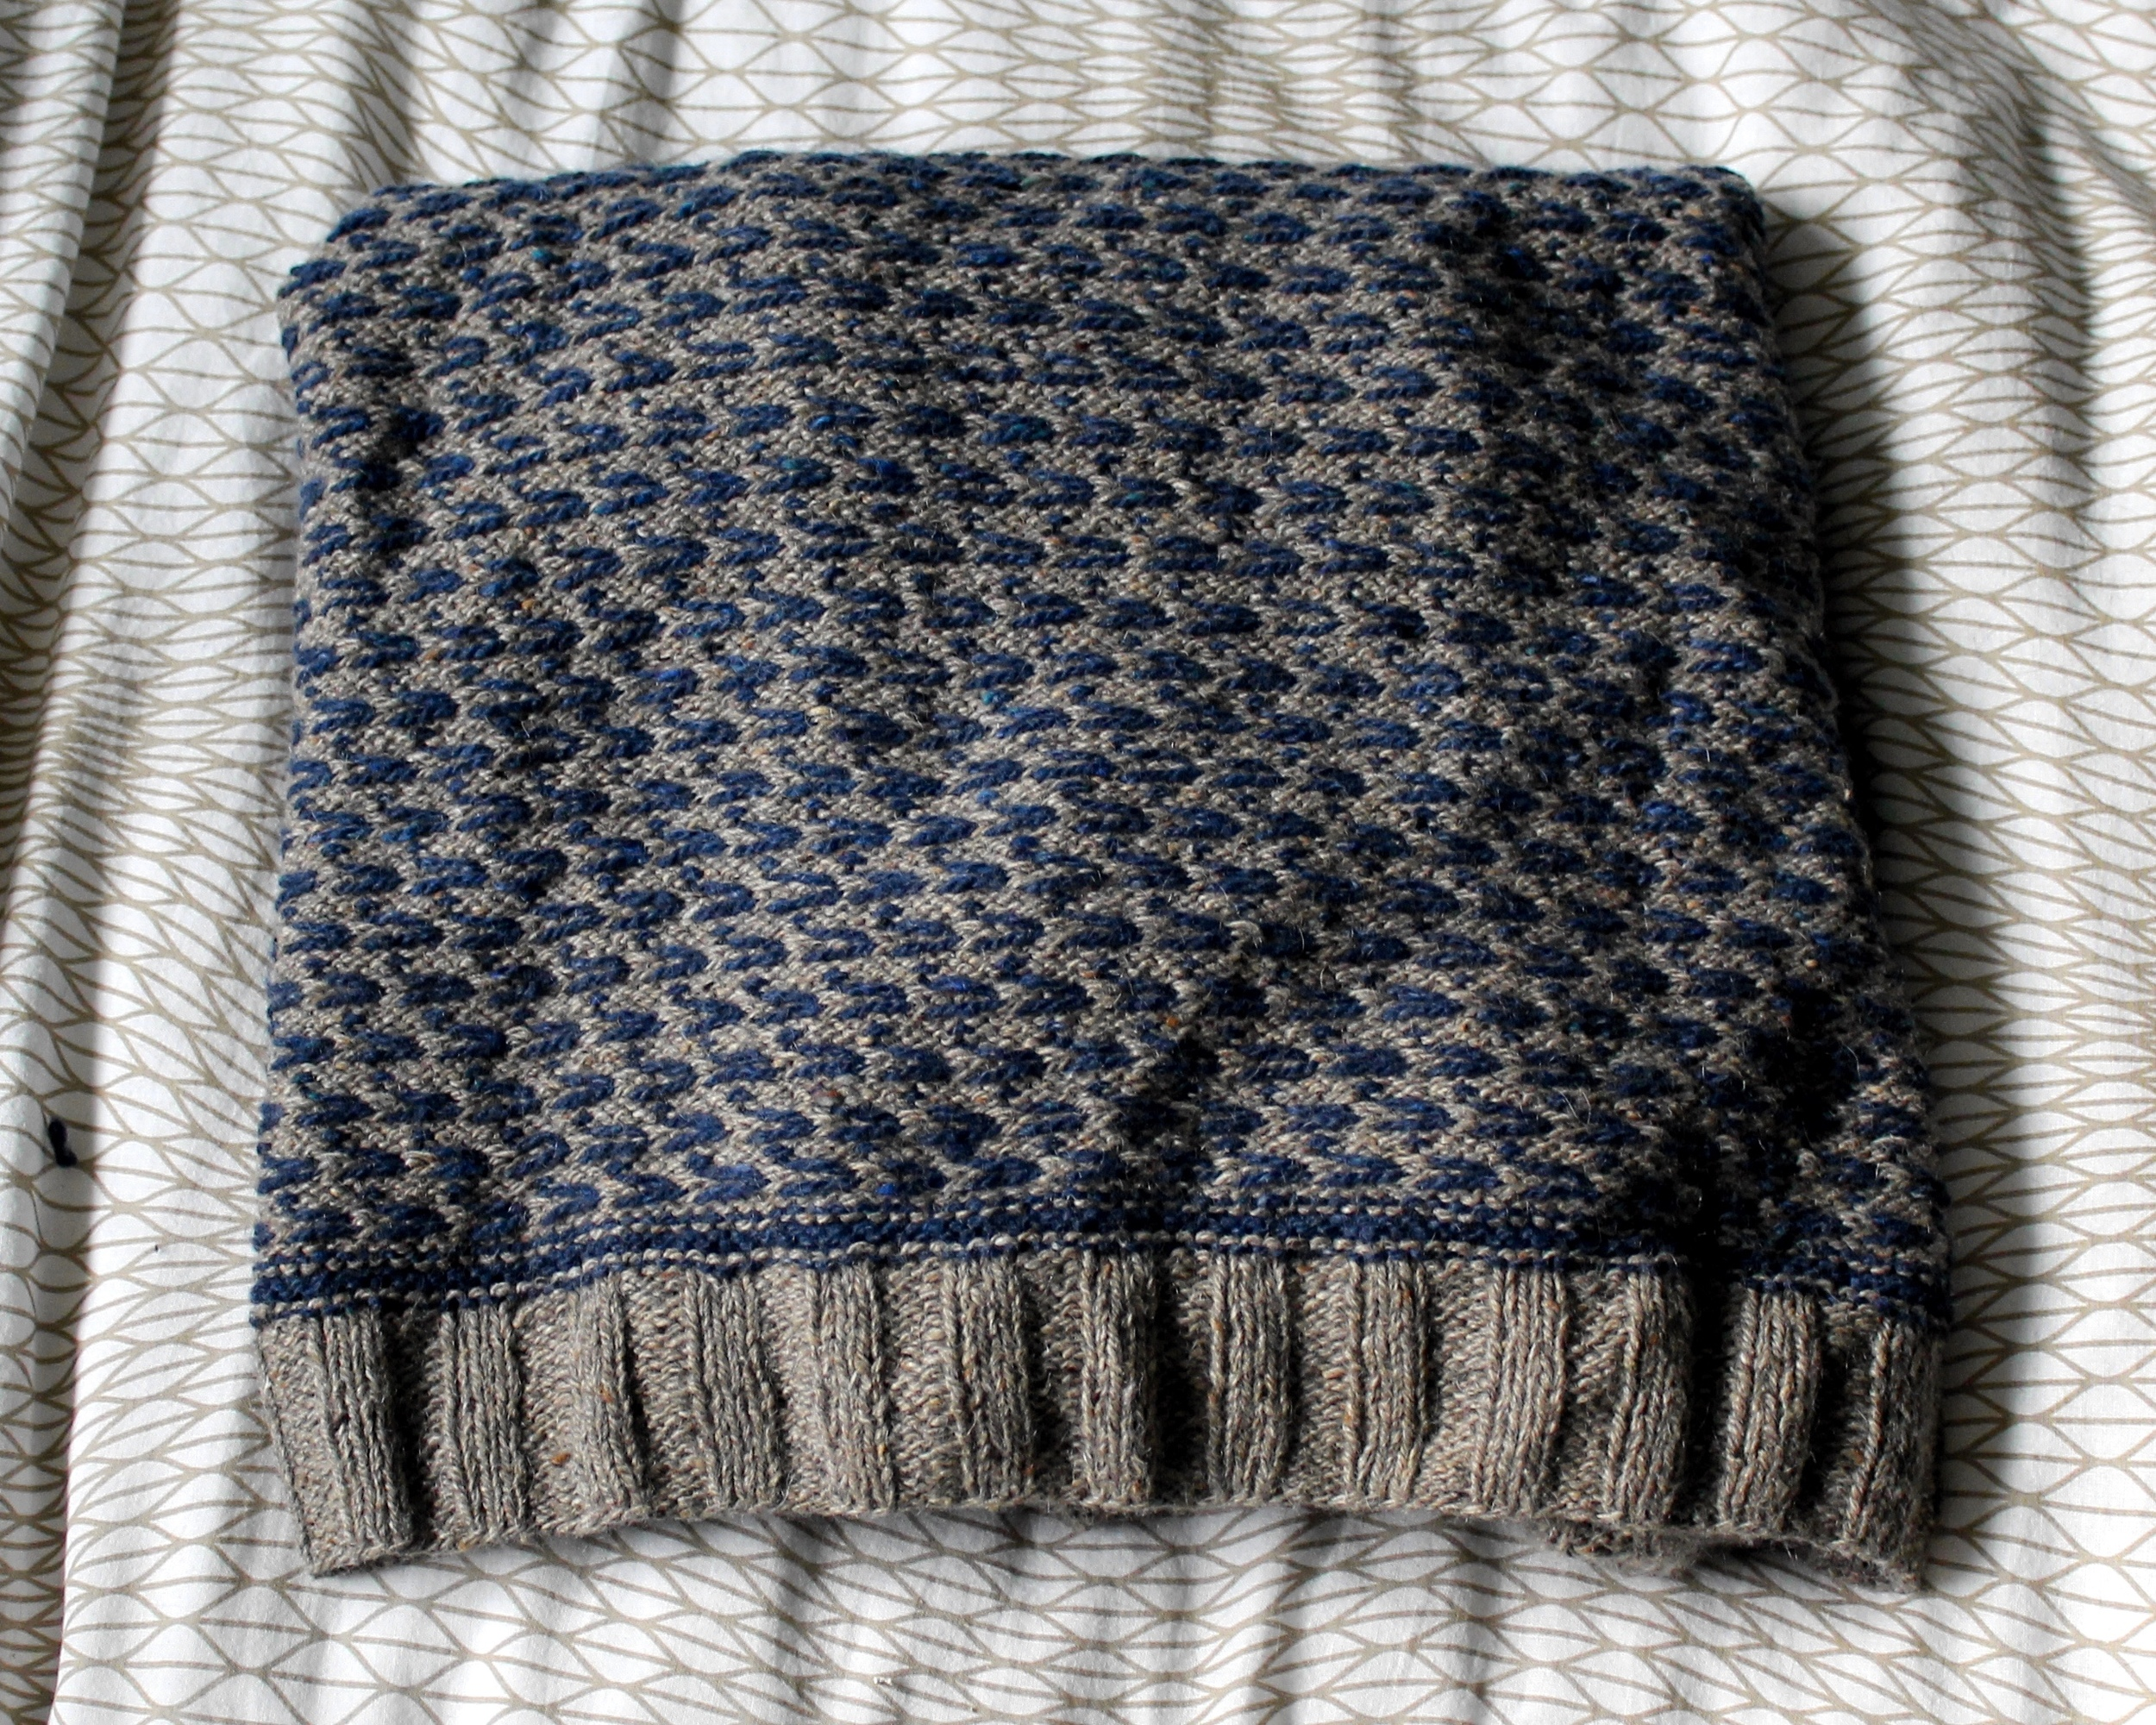 Inside of Warwick Sweater in light brown and navy tweed Berroco yarn, showing even colorwork floats